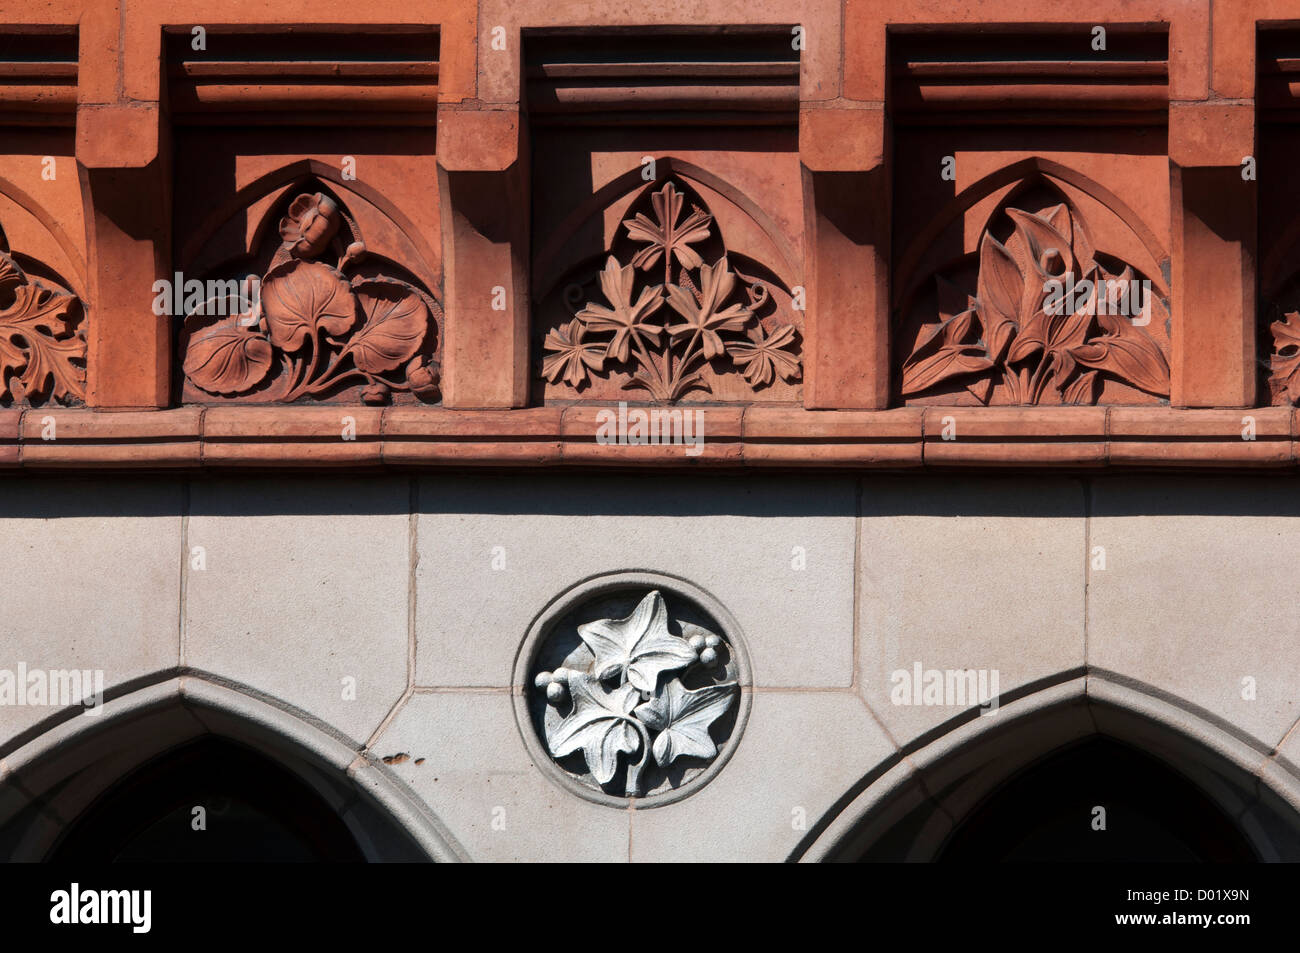 Terra-cotta frieze on the Old Bank building, Stratford-upon-Avon, UK - Stock Image